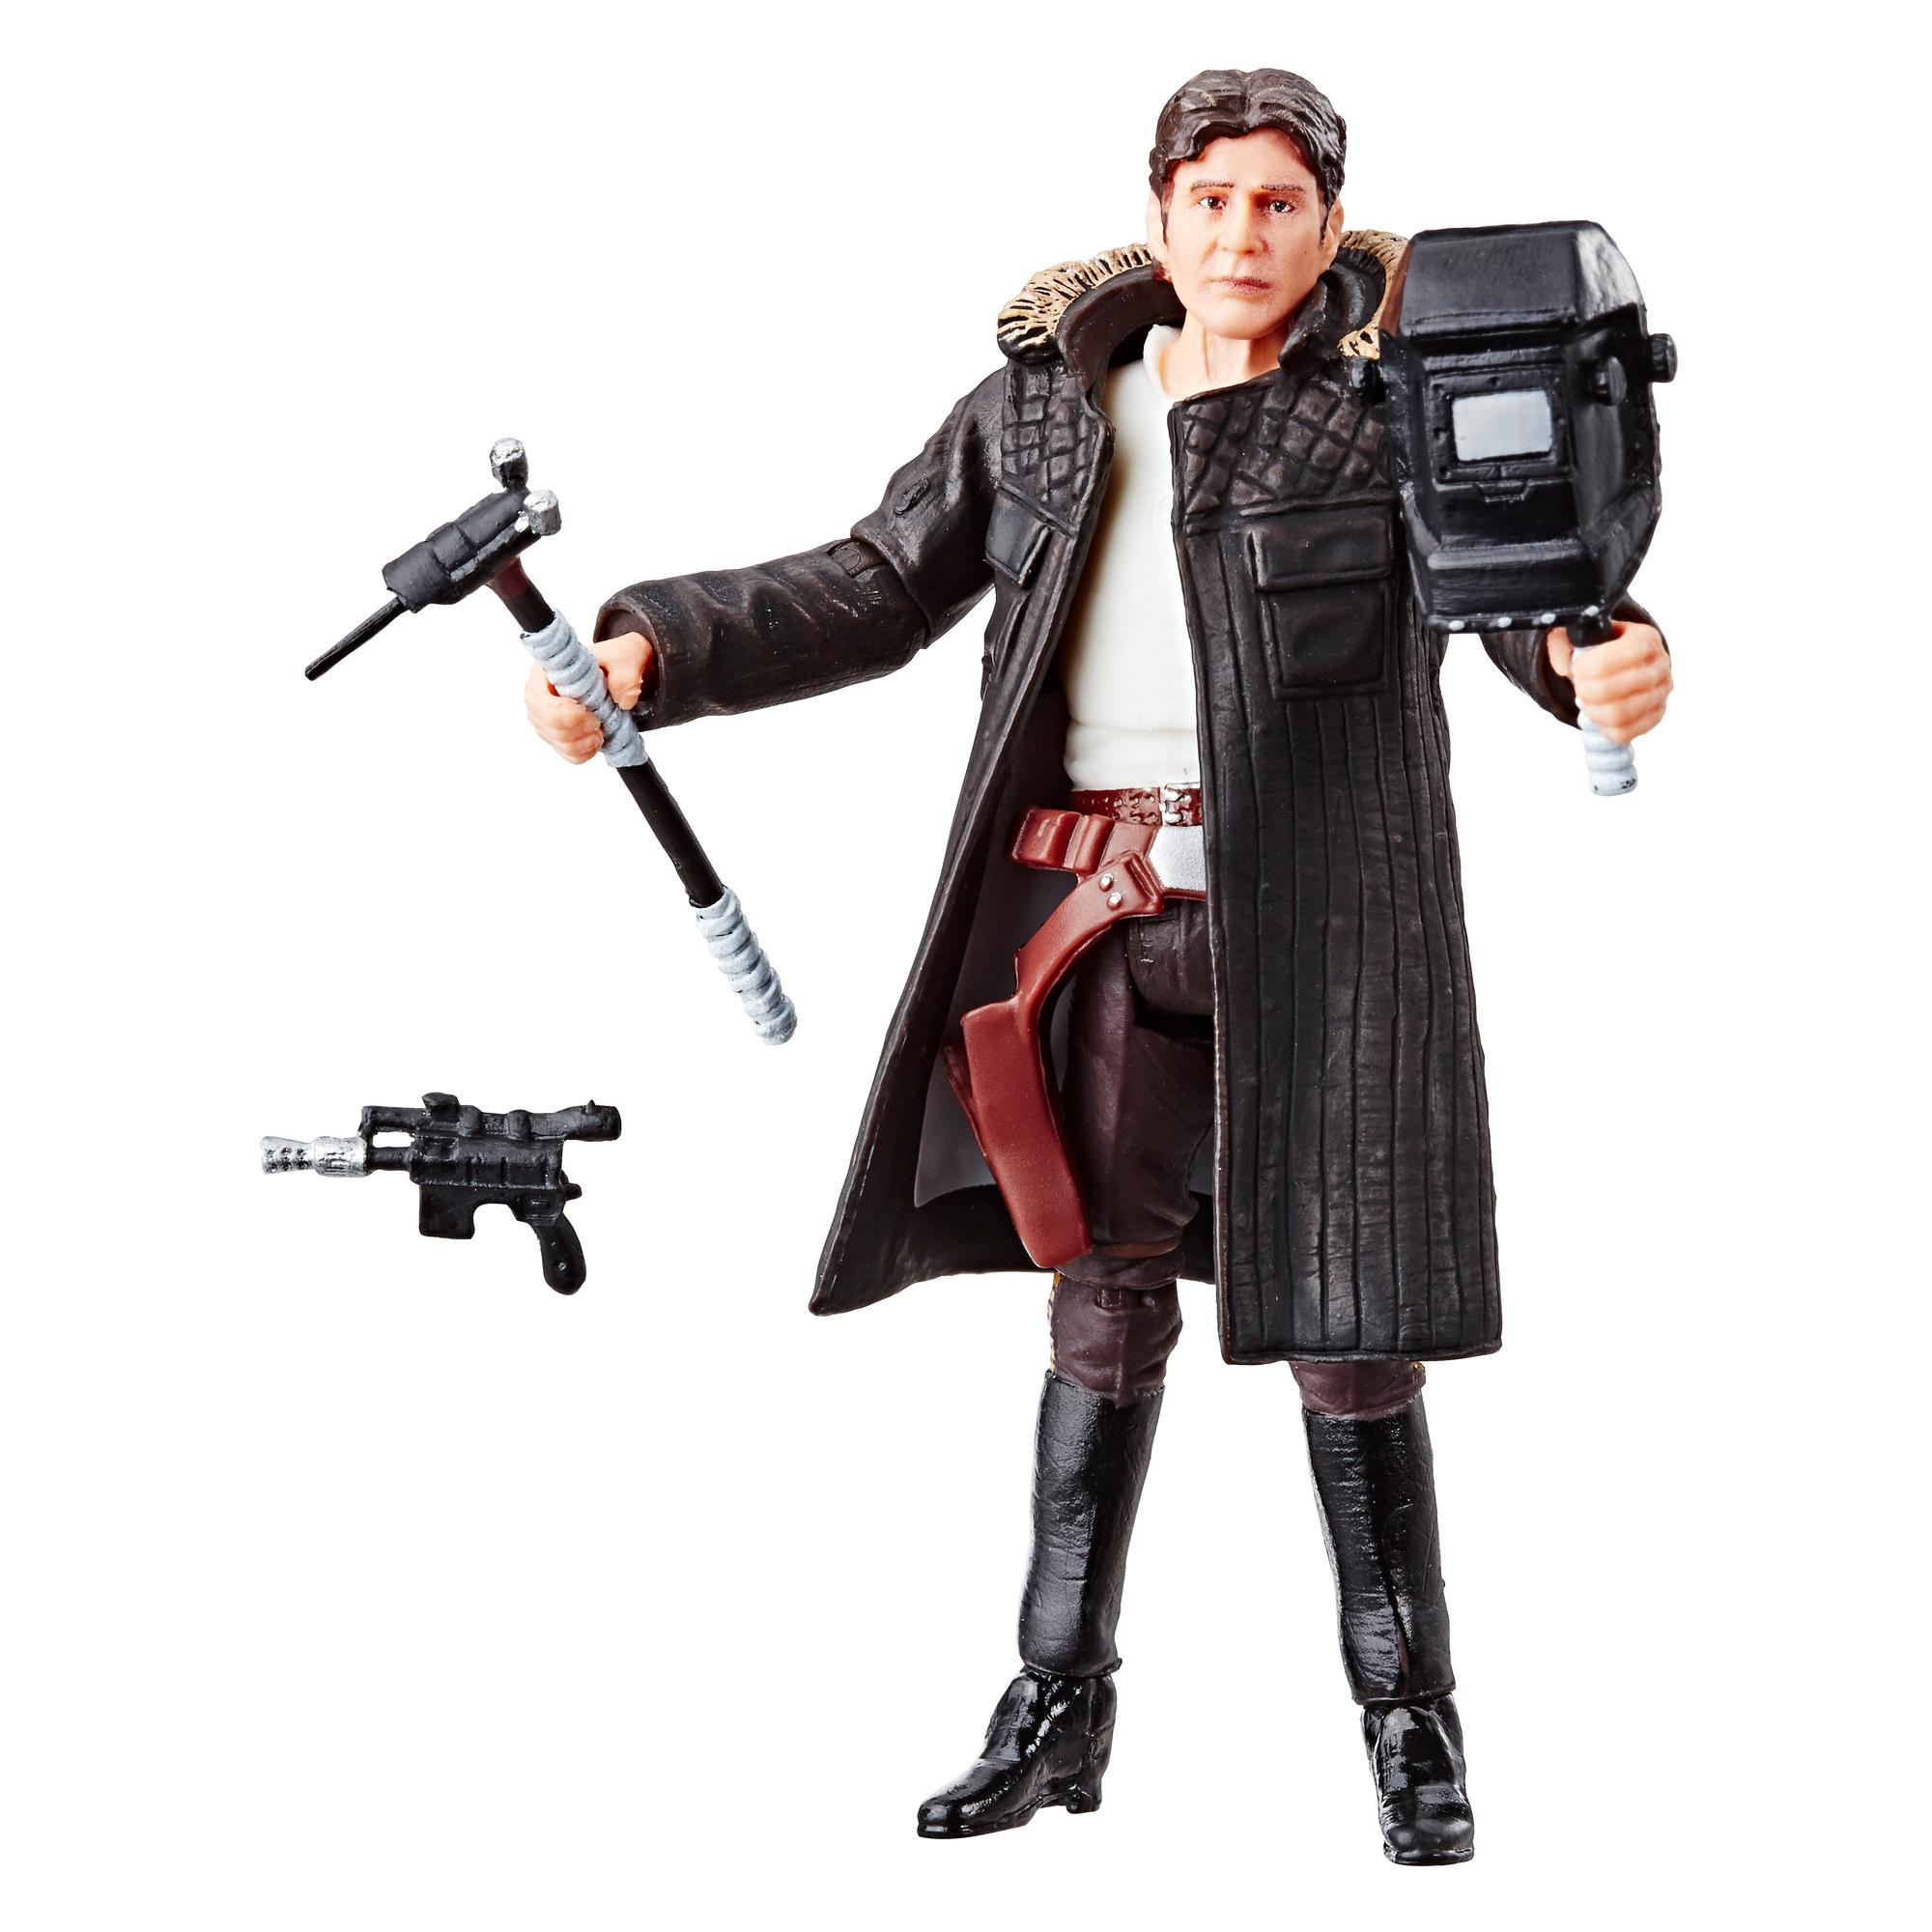 Star Wars The Vintage Collection Star Wars: The Empire Strikes Back Han Solo (Echo Base) 3.75-inch Figure